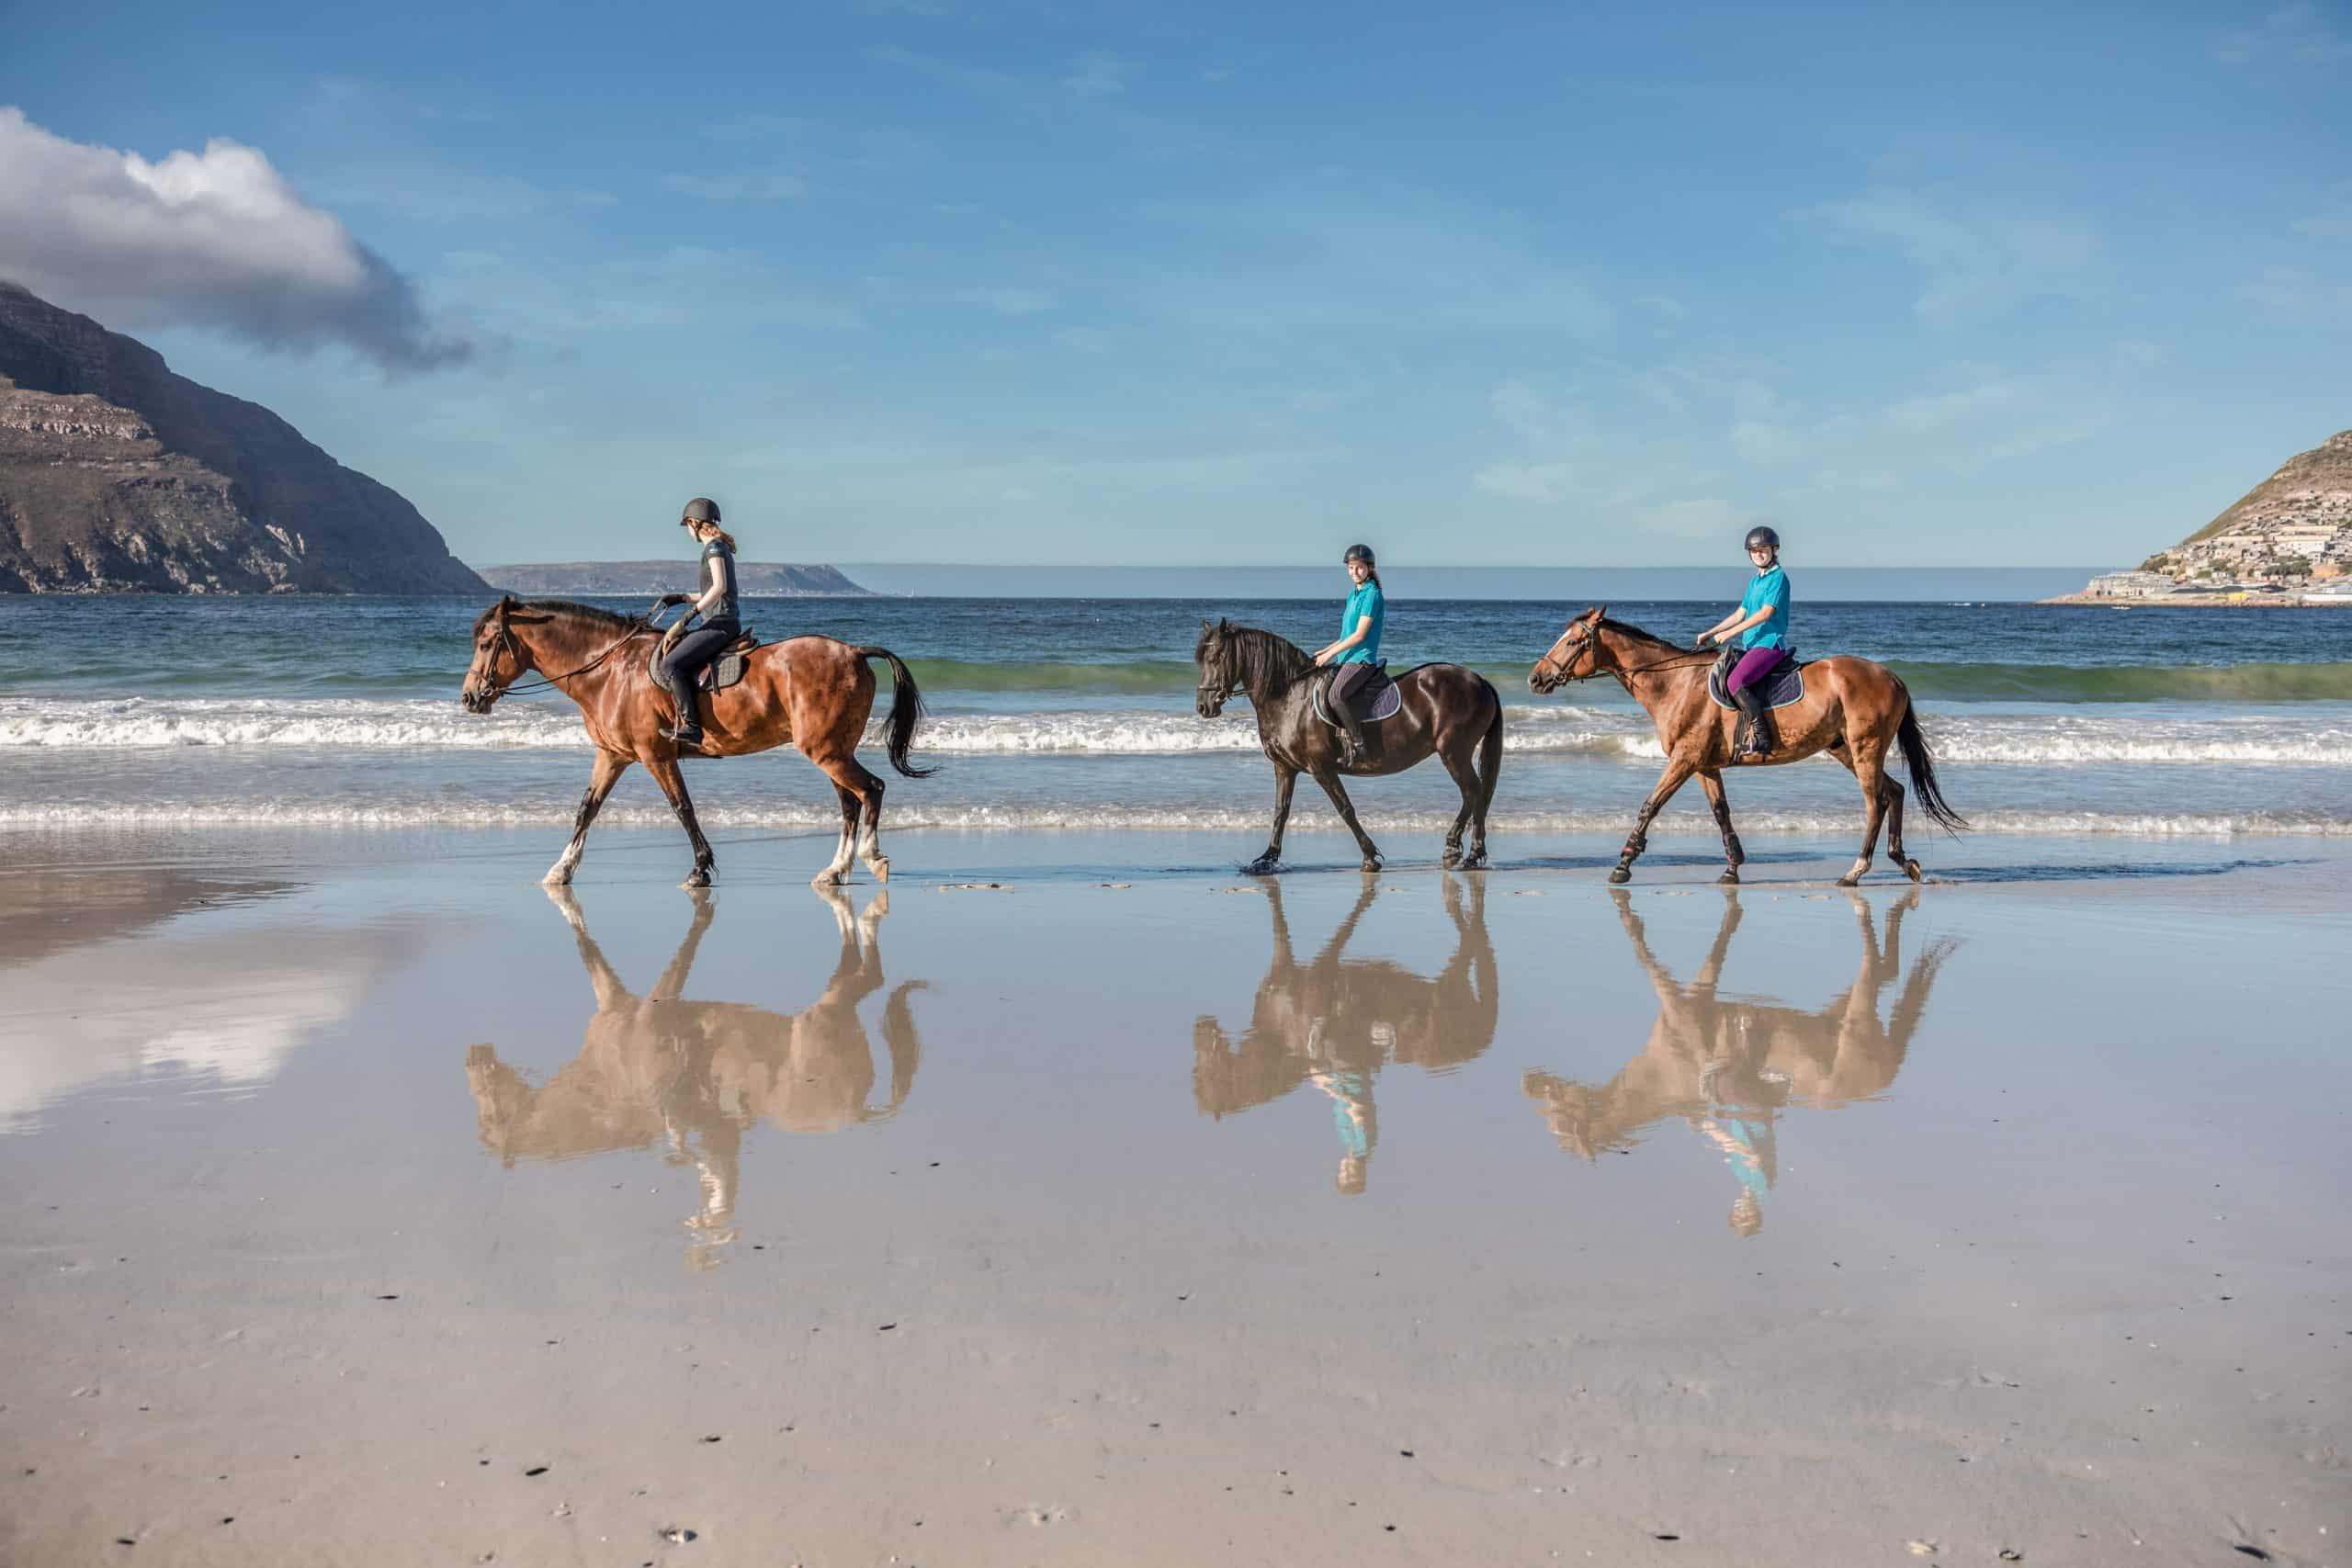 Three teenage girls on horseback walking in the water at low tide on the beach with a beautiful mountain in the background and reflections of themselves in the water on the shore